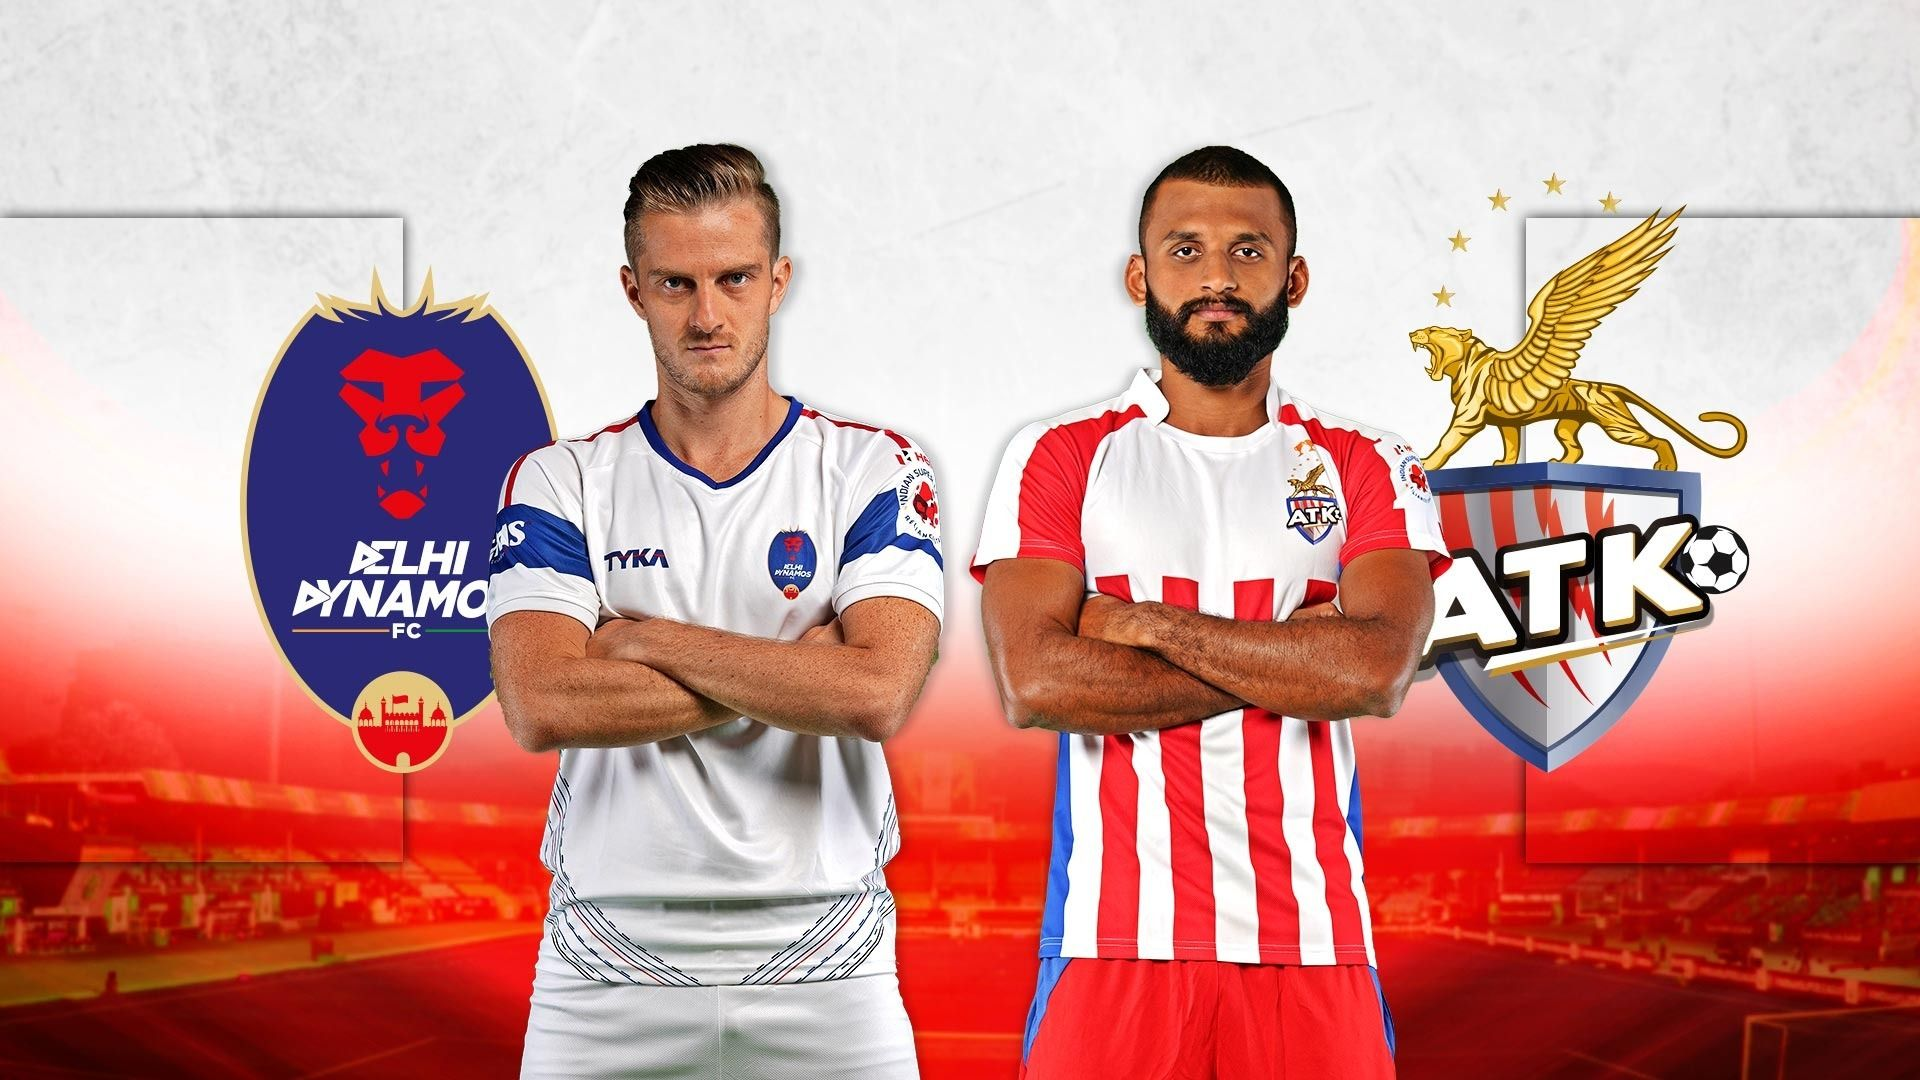 Live Match Delhi Dynamos Fc Vs Atk Football Live Streaming And Preview When